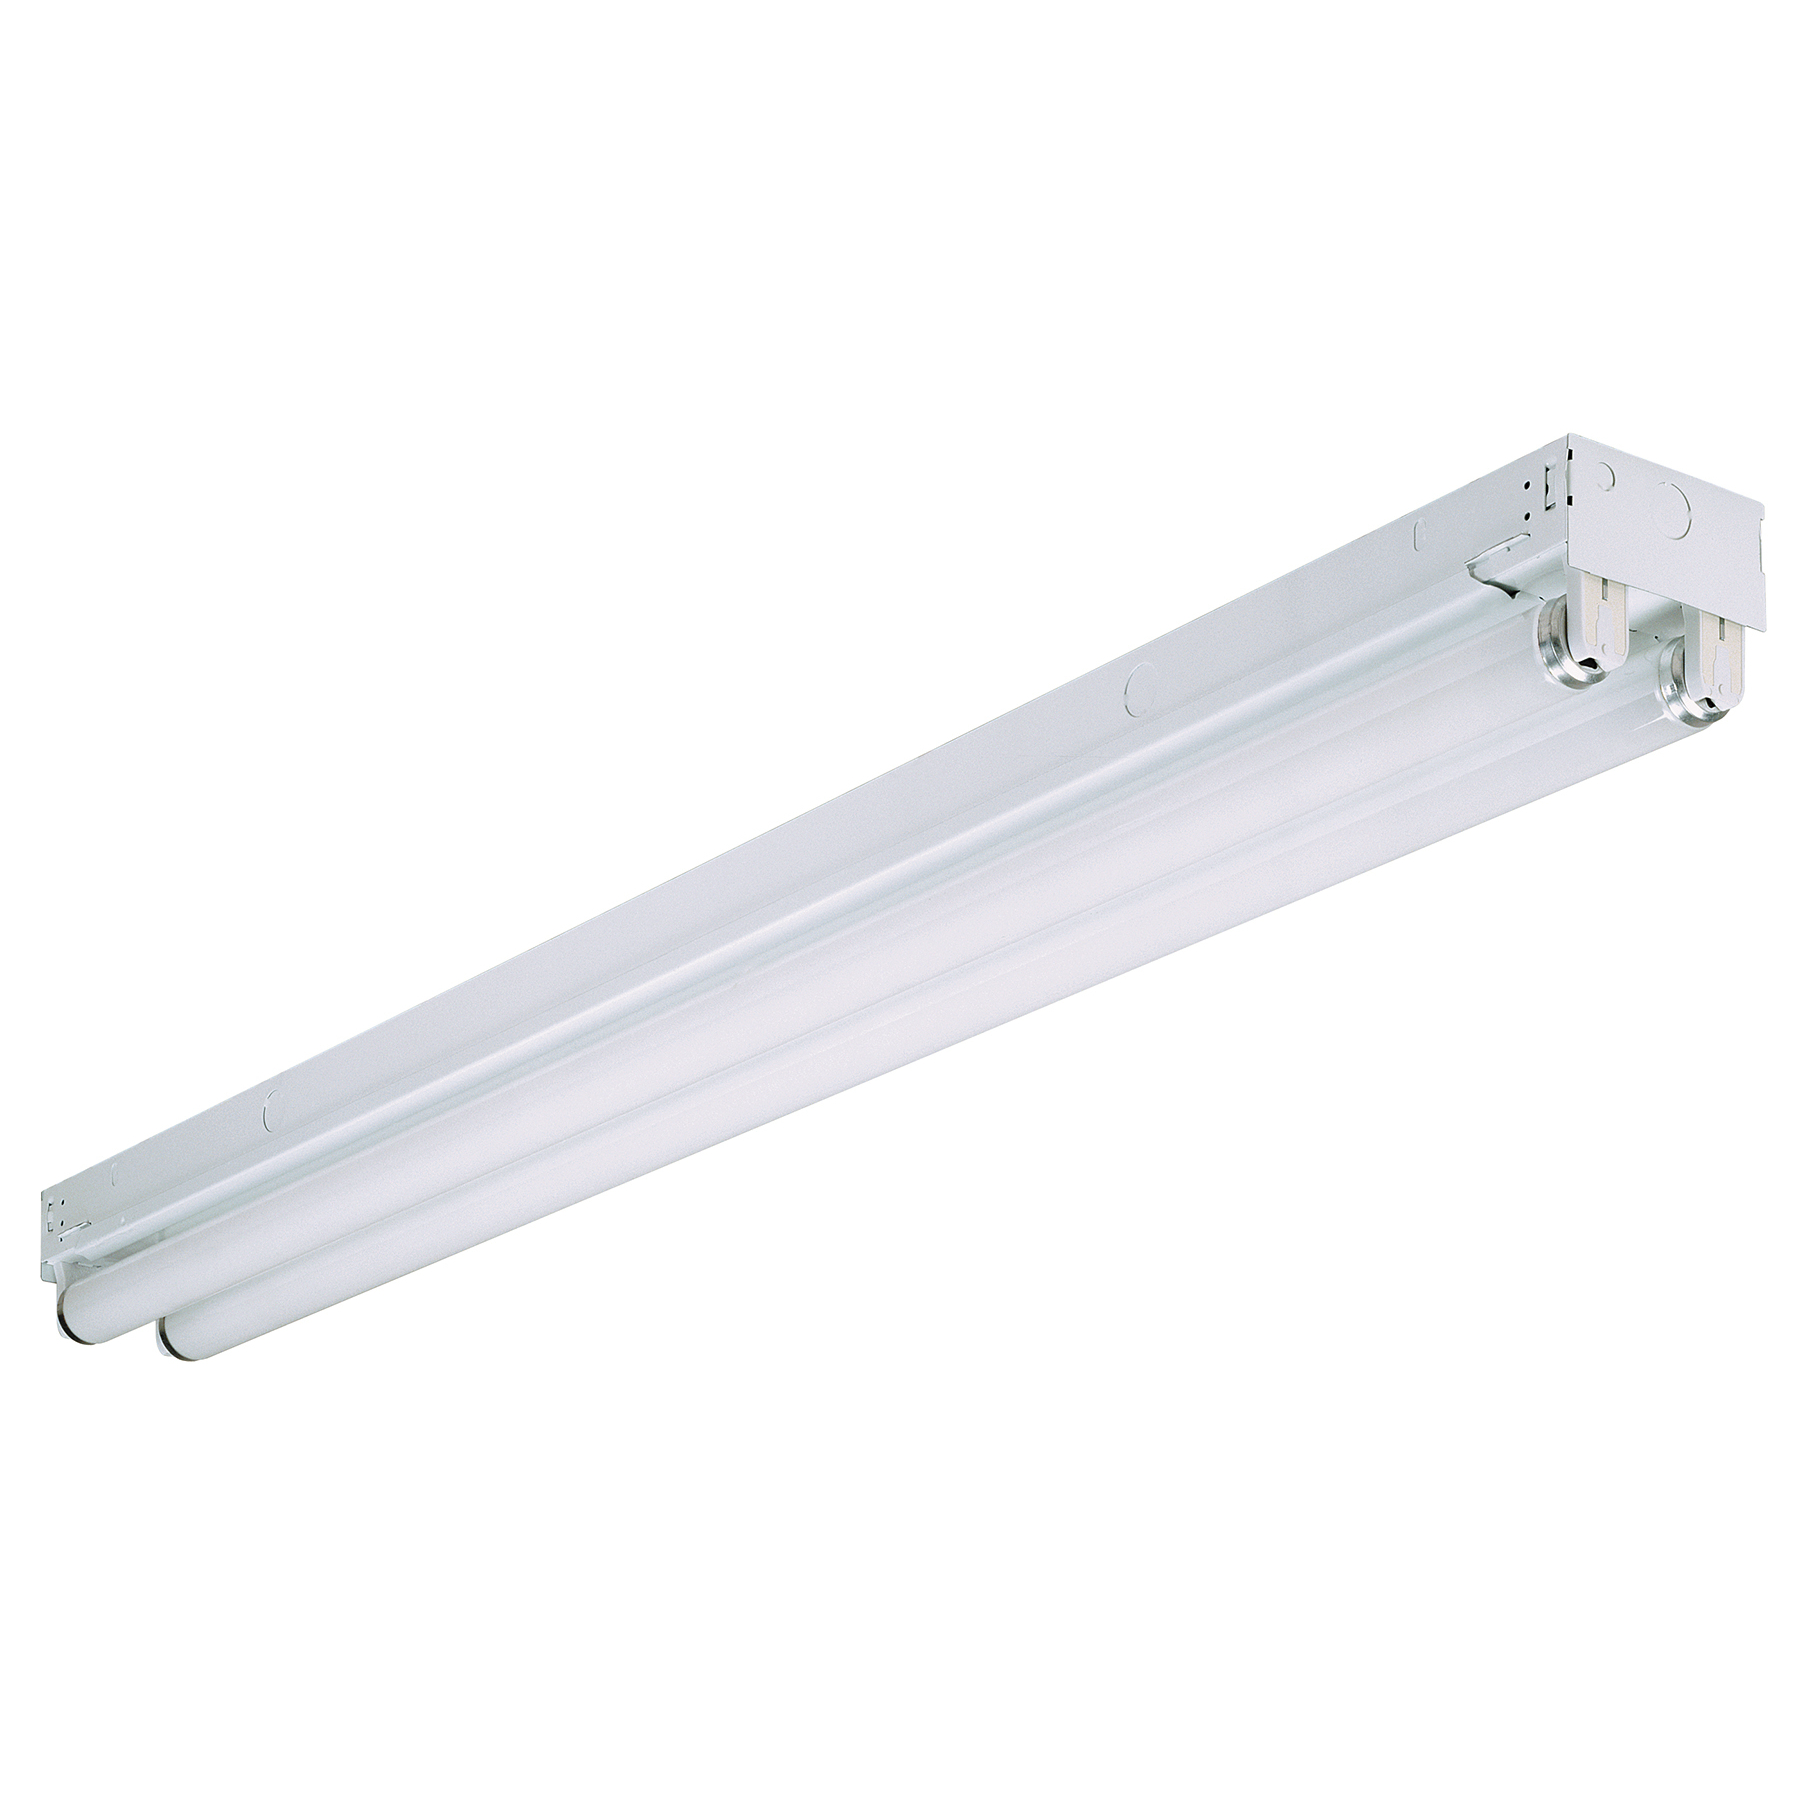 3 Foot Fluorescent Light Diffusers - User Guide Manual That Easy-to ...